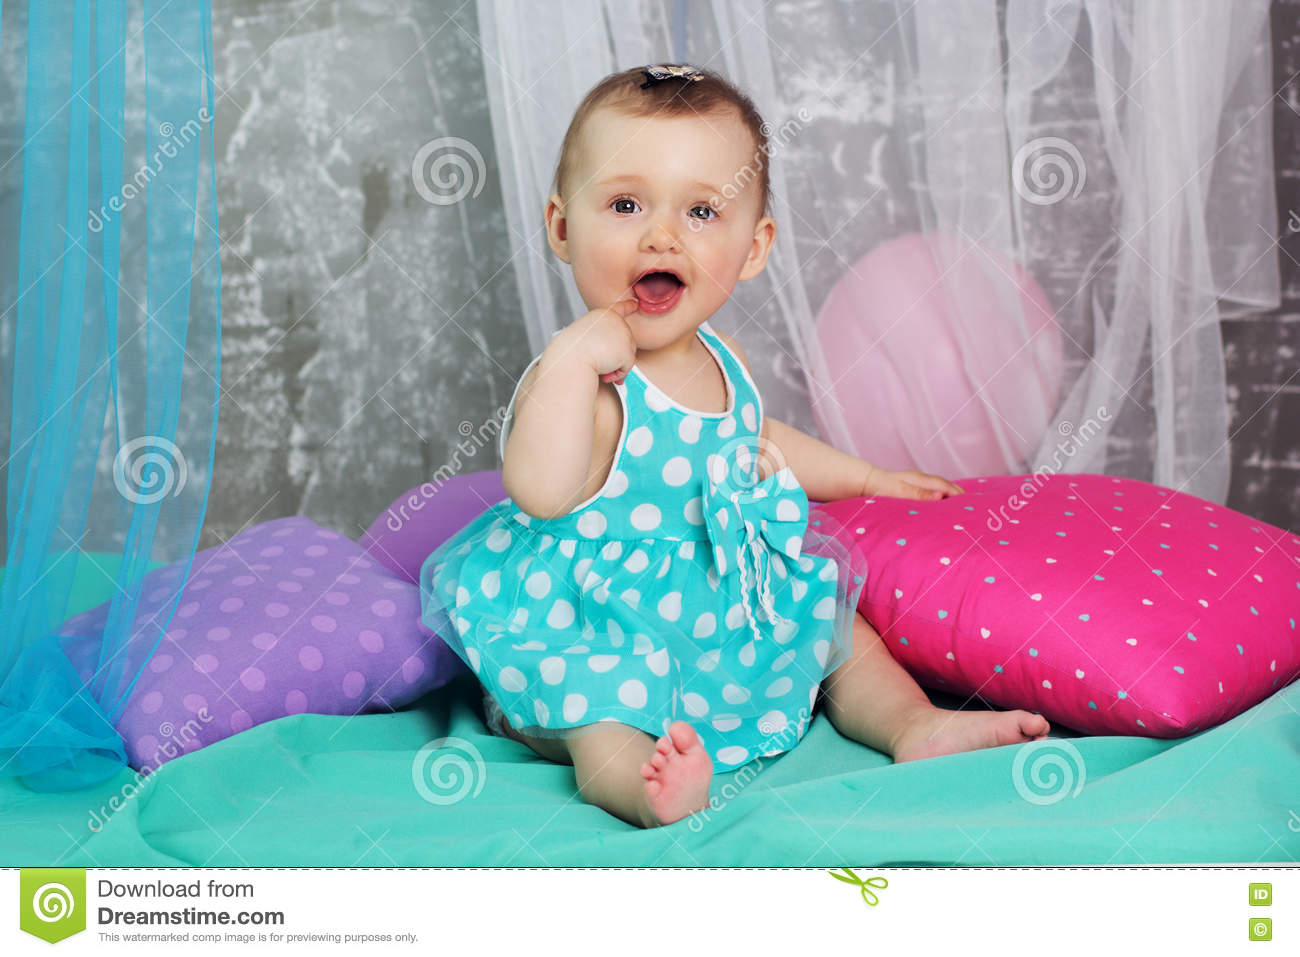 d3cedb752 Happy cute baby girl is wearing nice dress sitting with colorful pillows